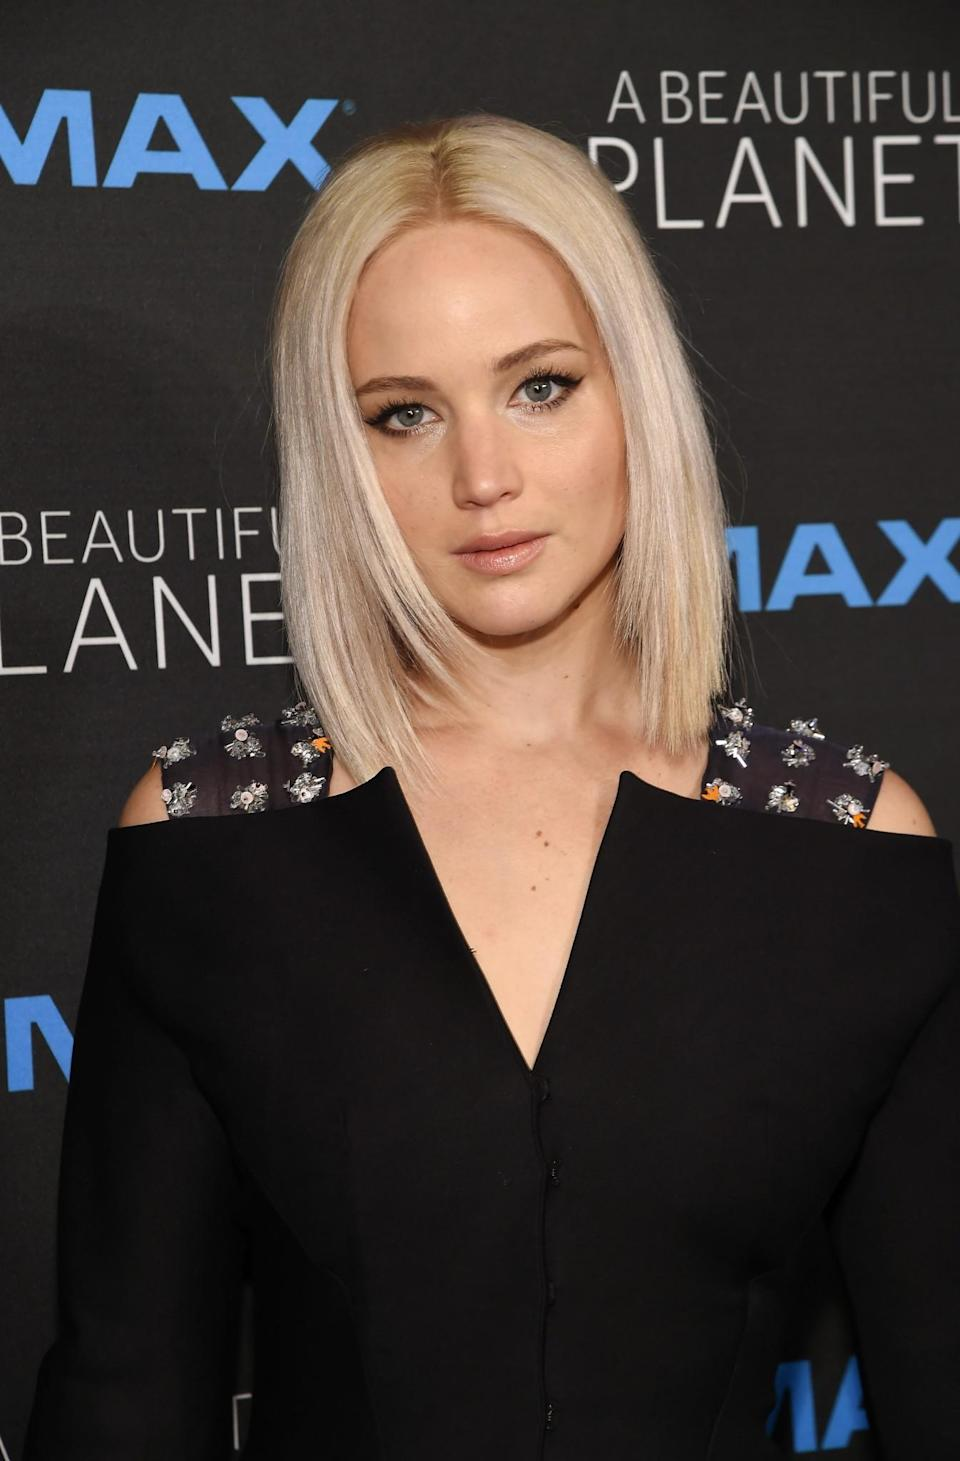 <p>J Law appeared to be channelling Victoria Beckham circa 2007 with this sleek 'pob' that she debuted at the NYC premiere of 'A Beautiful Planet'. [Photo: Getty] </p>